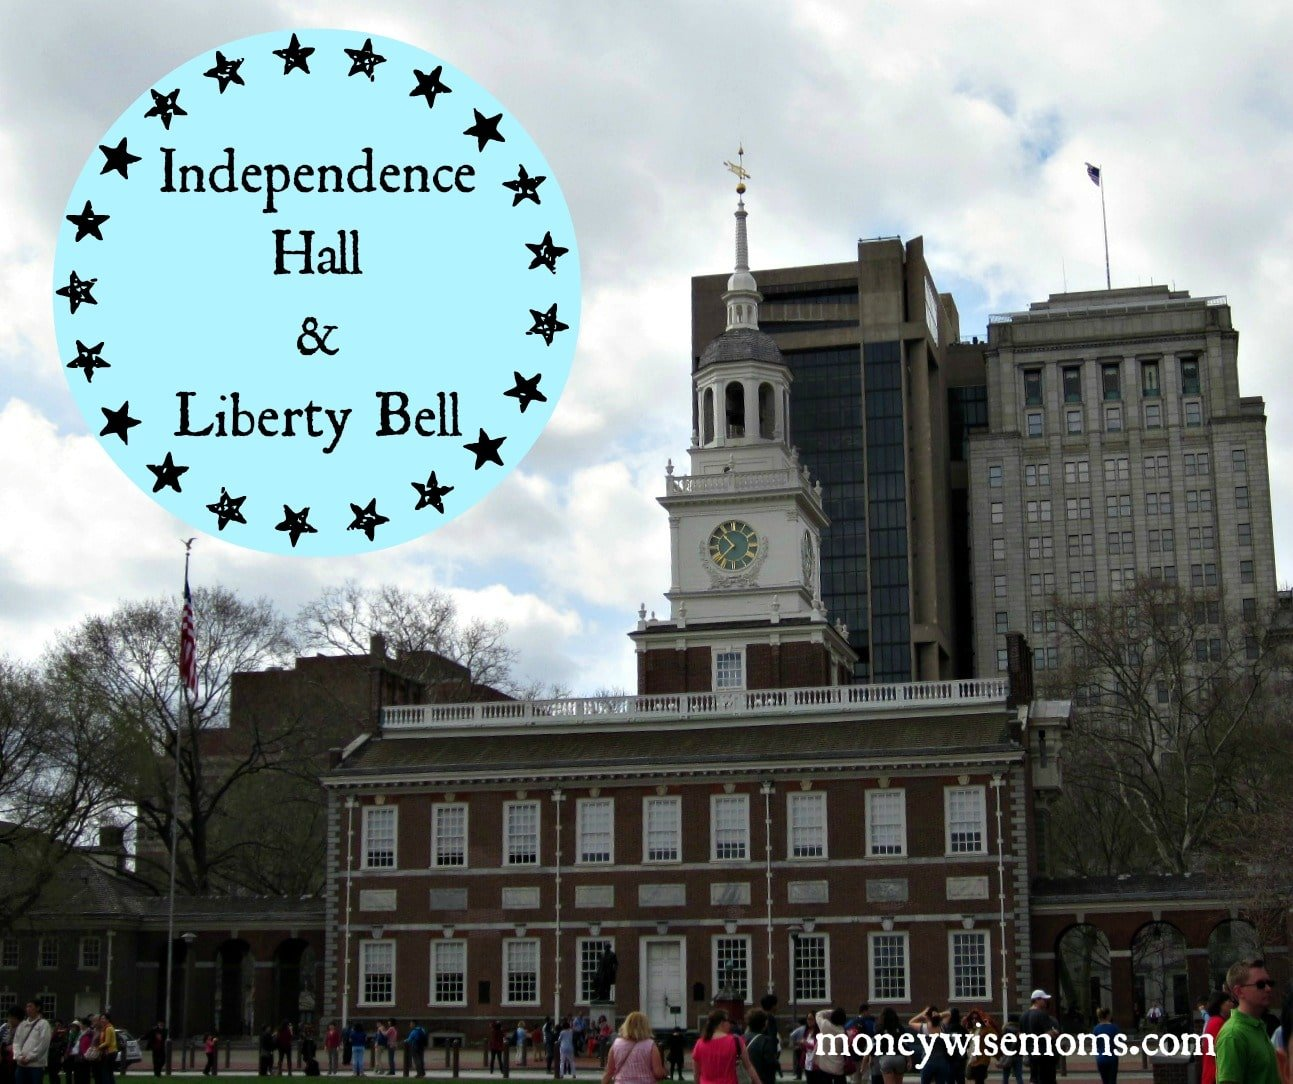 Independence Hall & Liberty Bell in Philadelphia #familytravel | MoneywiseMoms